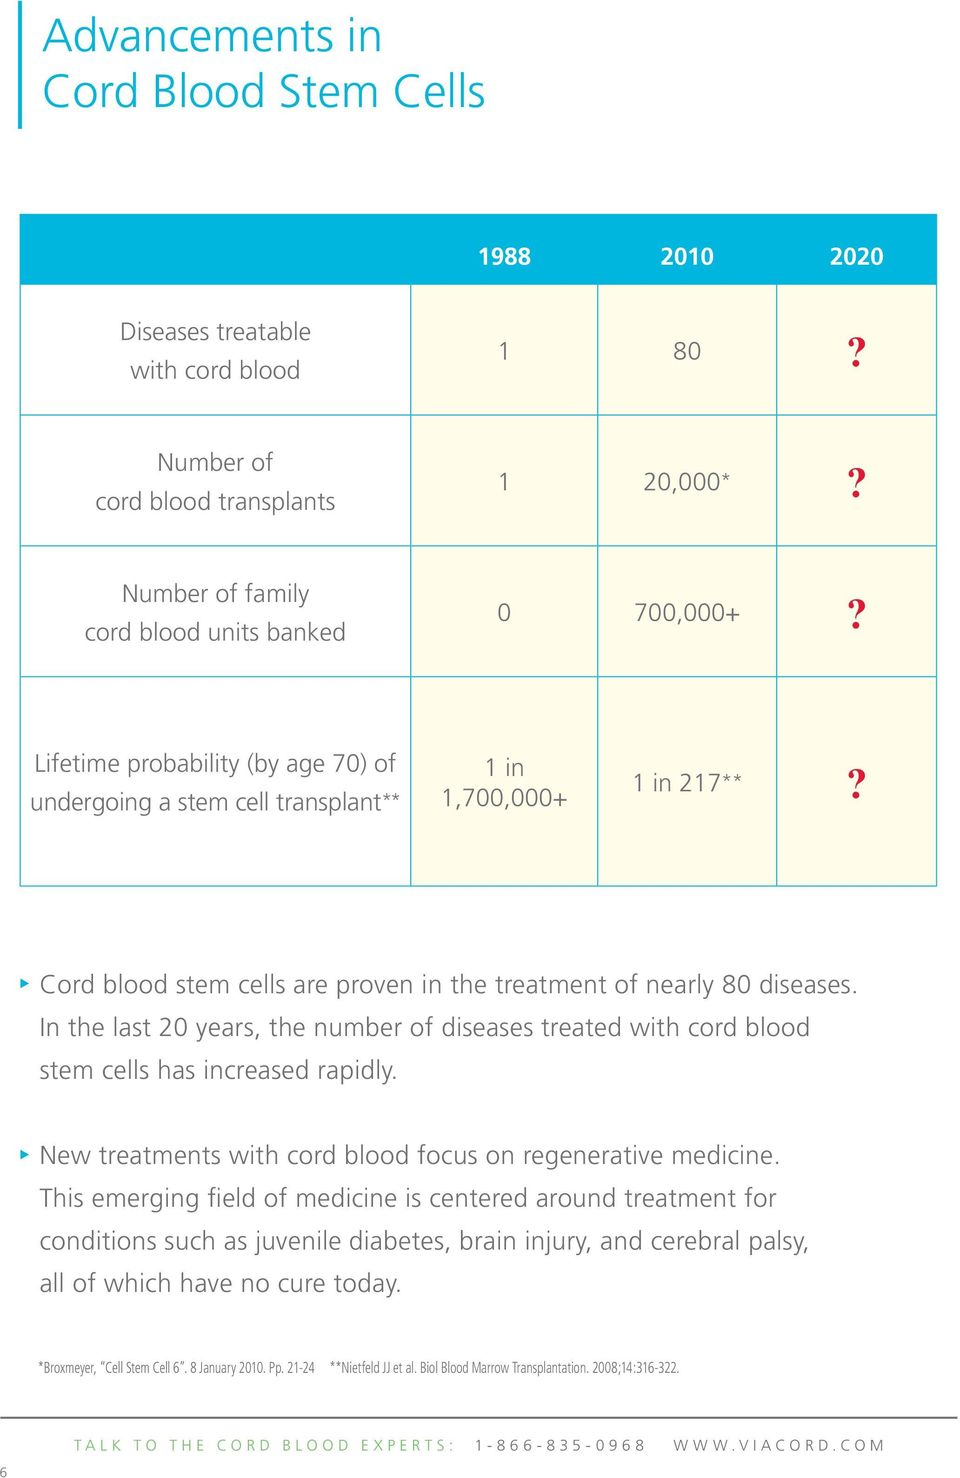 In the last 20 years, the number of diseases treated with cord blood stem cells has increased rapidly. New treatments with cord blood focus on regenerative medicine.